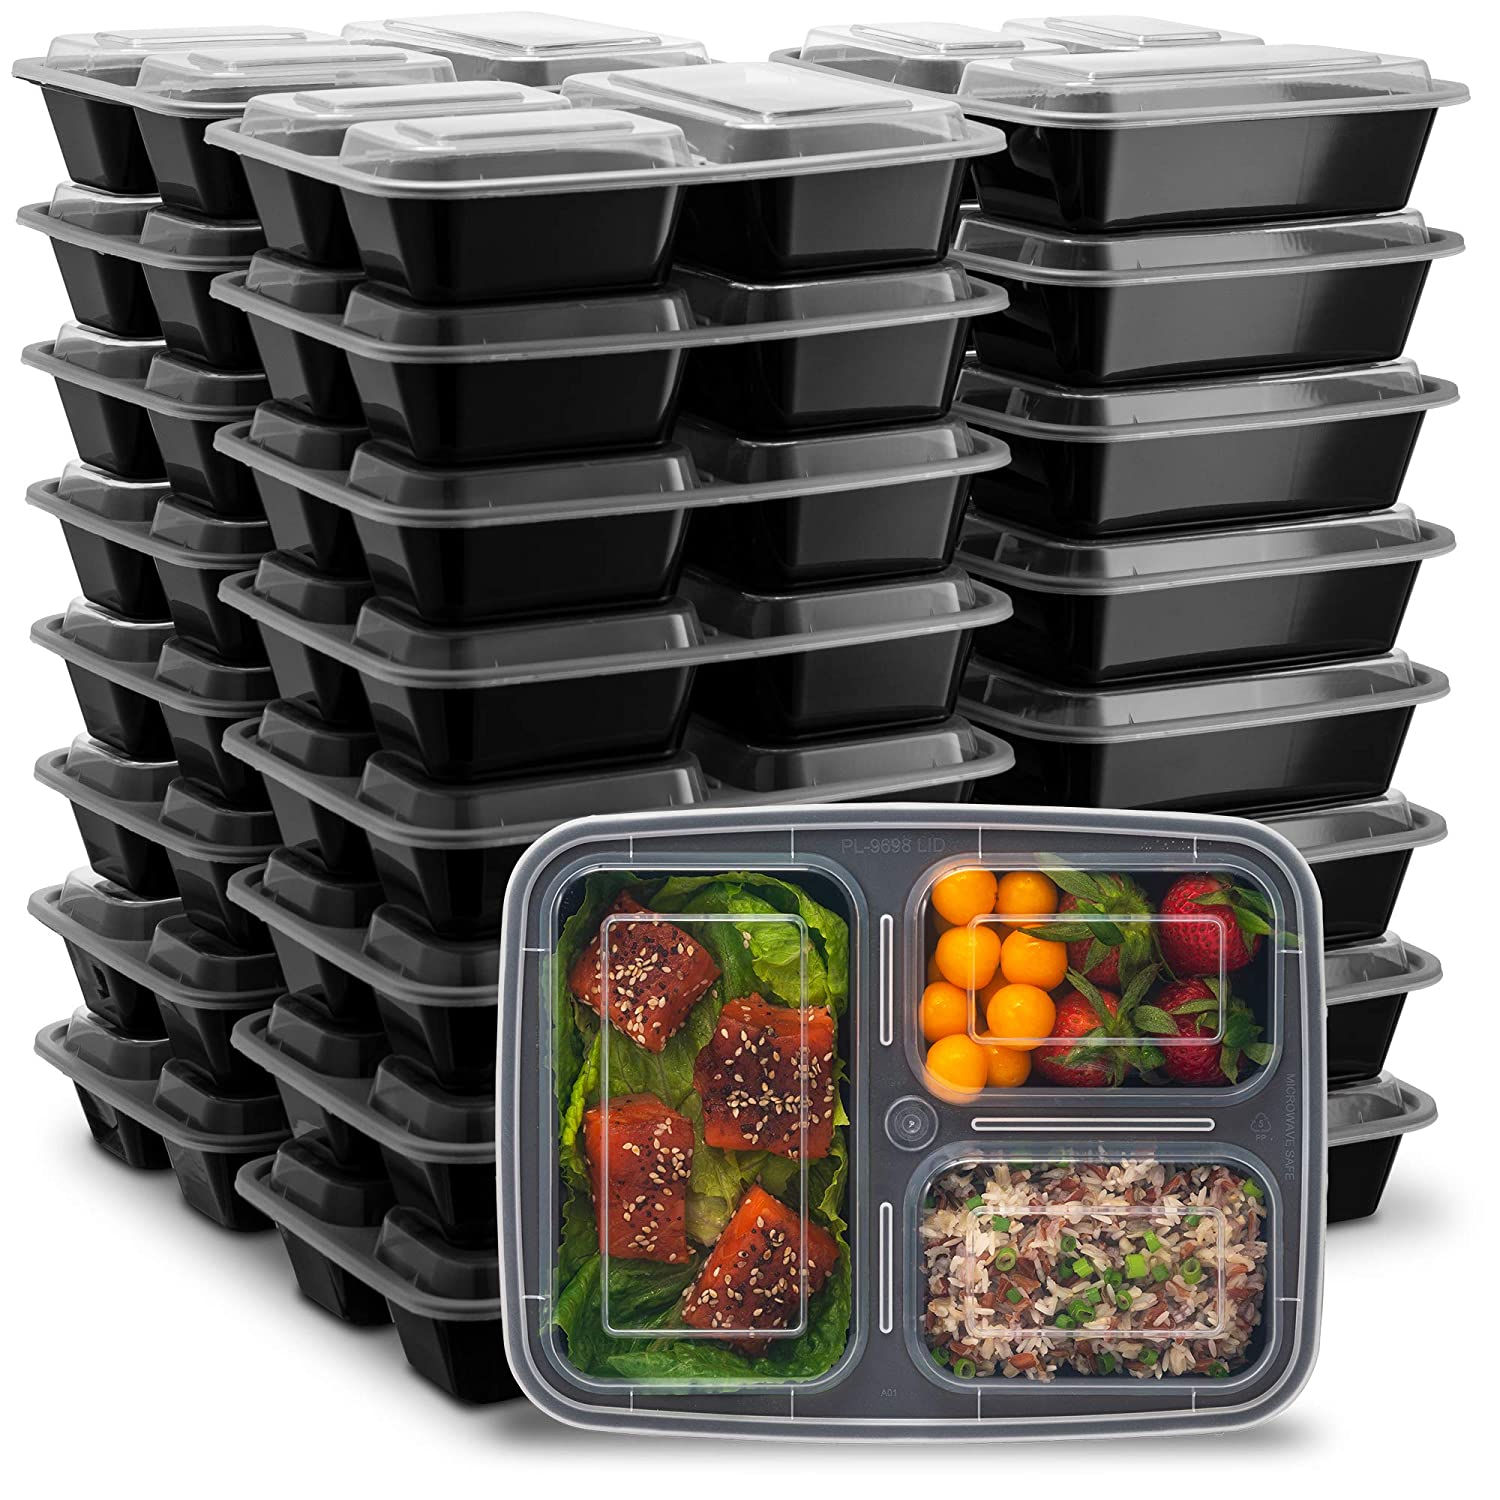 Ez Prepa [25 Pack] 32oz 3 Compartment Meal Prep Containers with Lids - Food Storage Containers BPA Free Plastic, Bento Box, Lunch Containers, Microwavable, Freezer and Dishwasher Safe, Food Containers